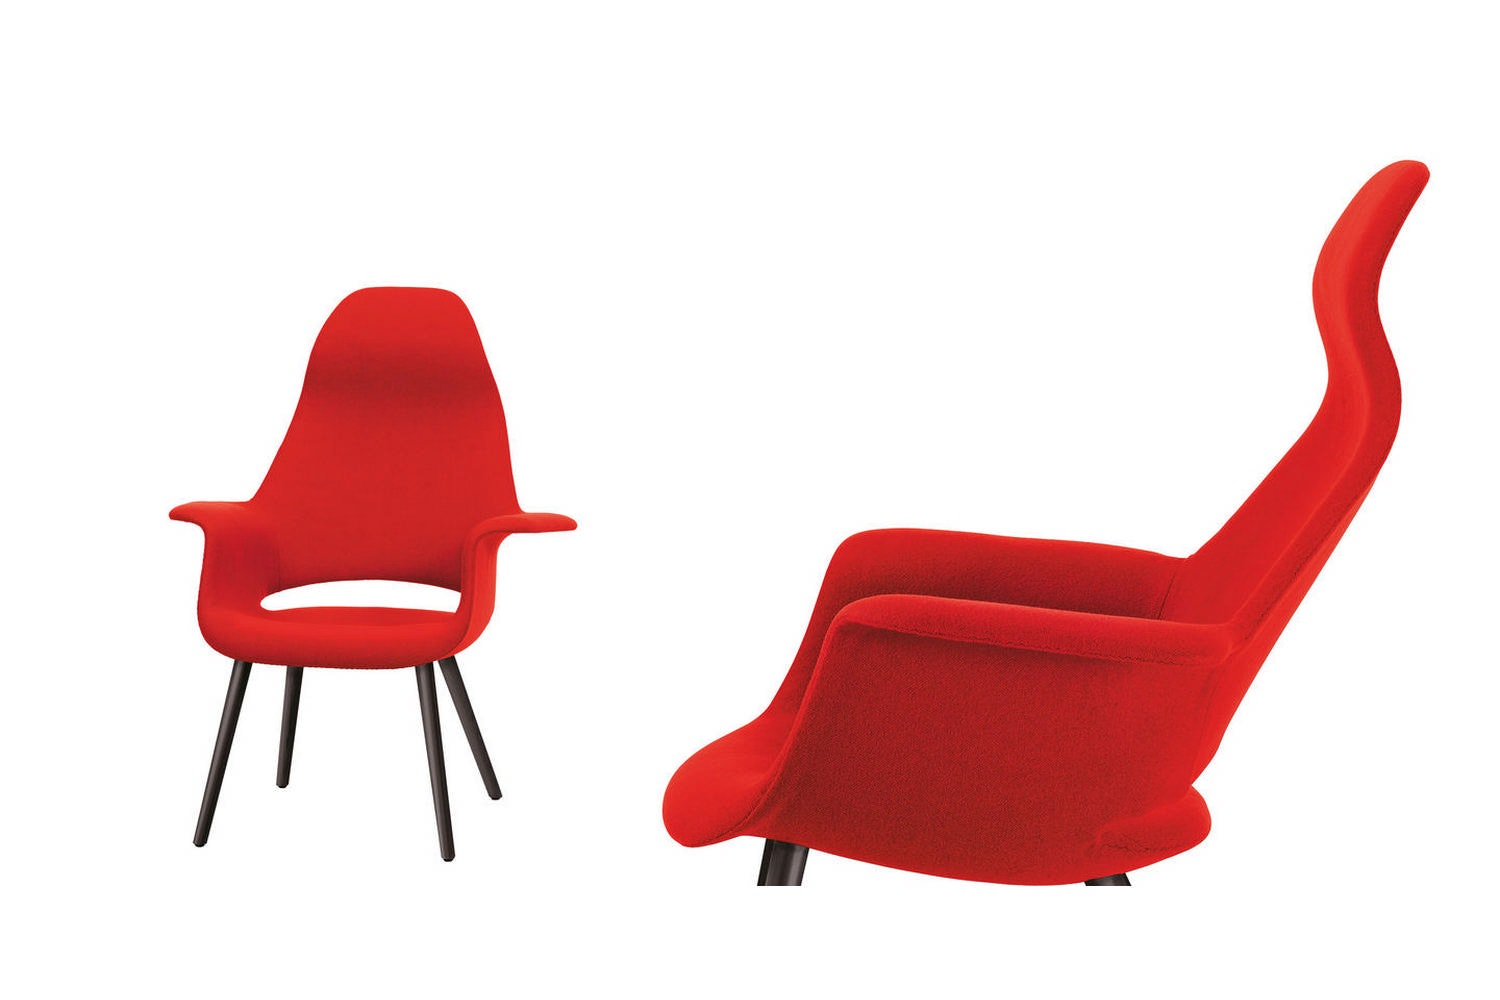 Organic Highback Chair with Arms by Charles Eames & Eero Saarinen for Vitra